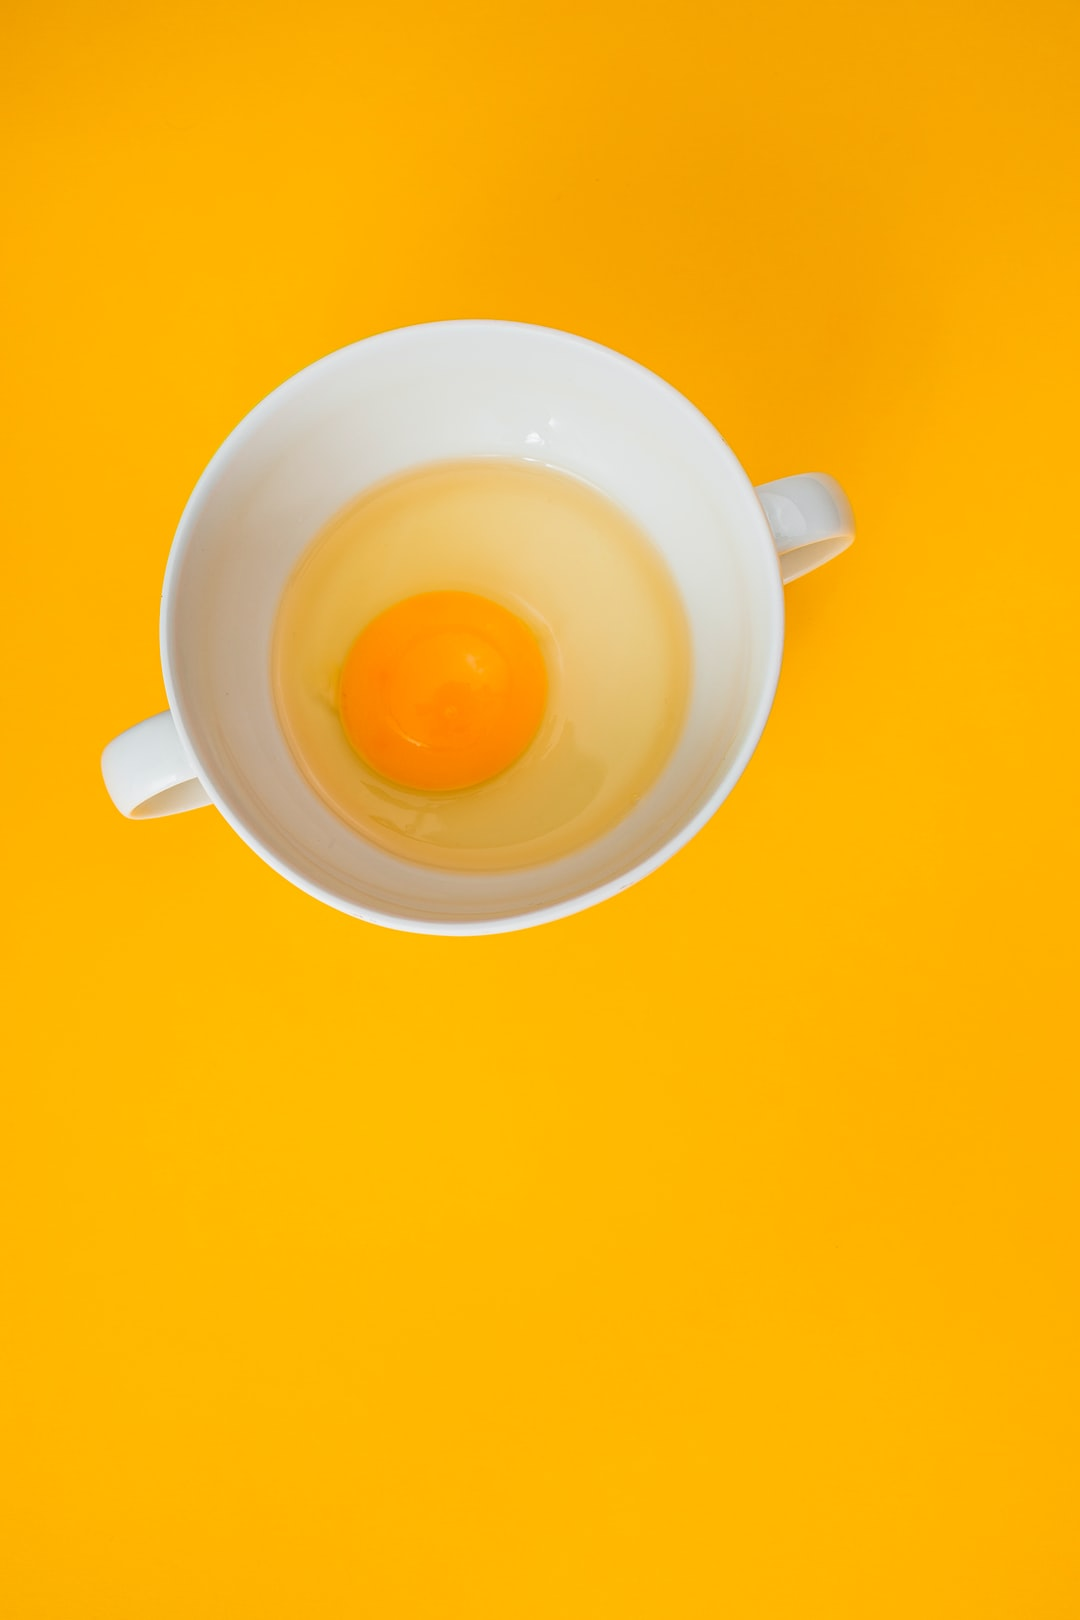 Fresh chicken  egg in ramekin on yellow background. Large copy space. Top view